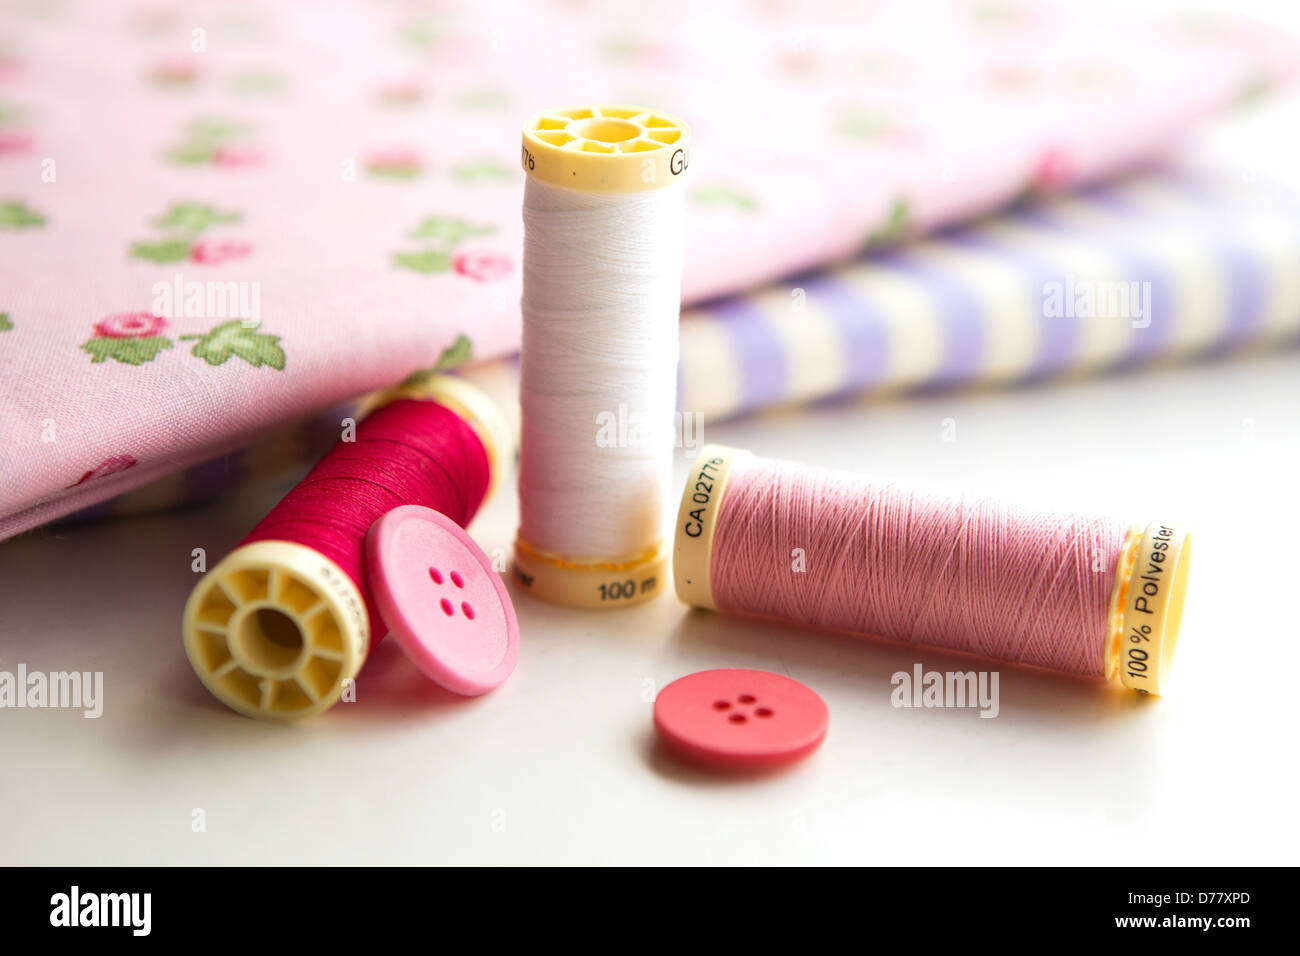 Sewing accessories - thread, fabric and buttons placed on a light grey background Stock Photo